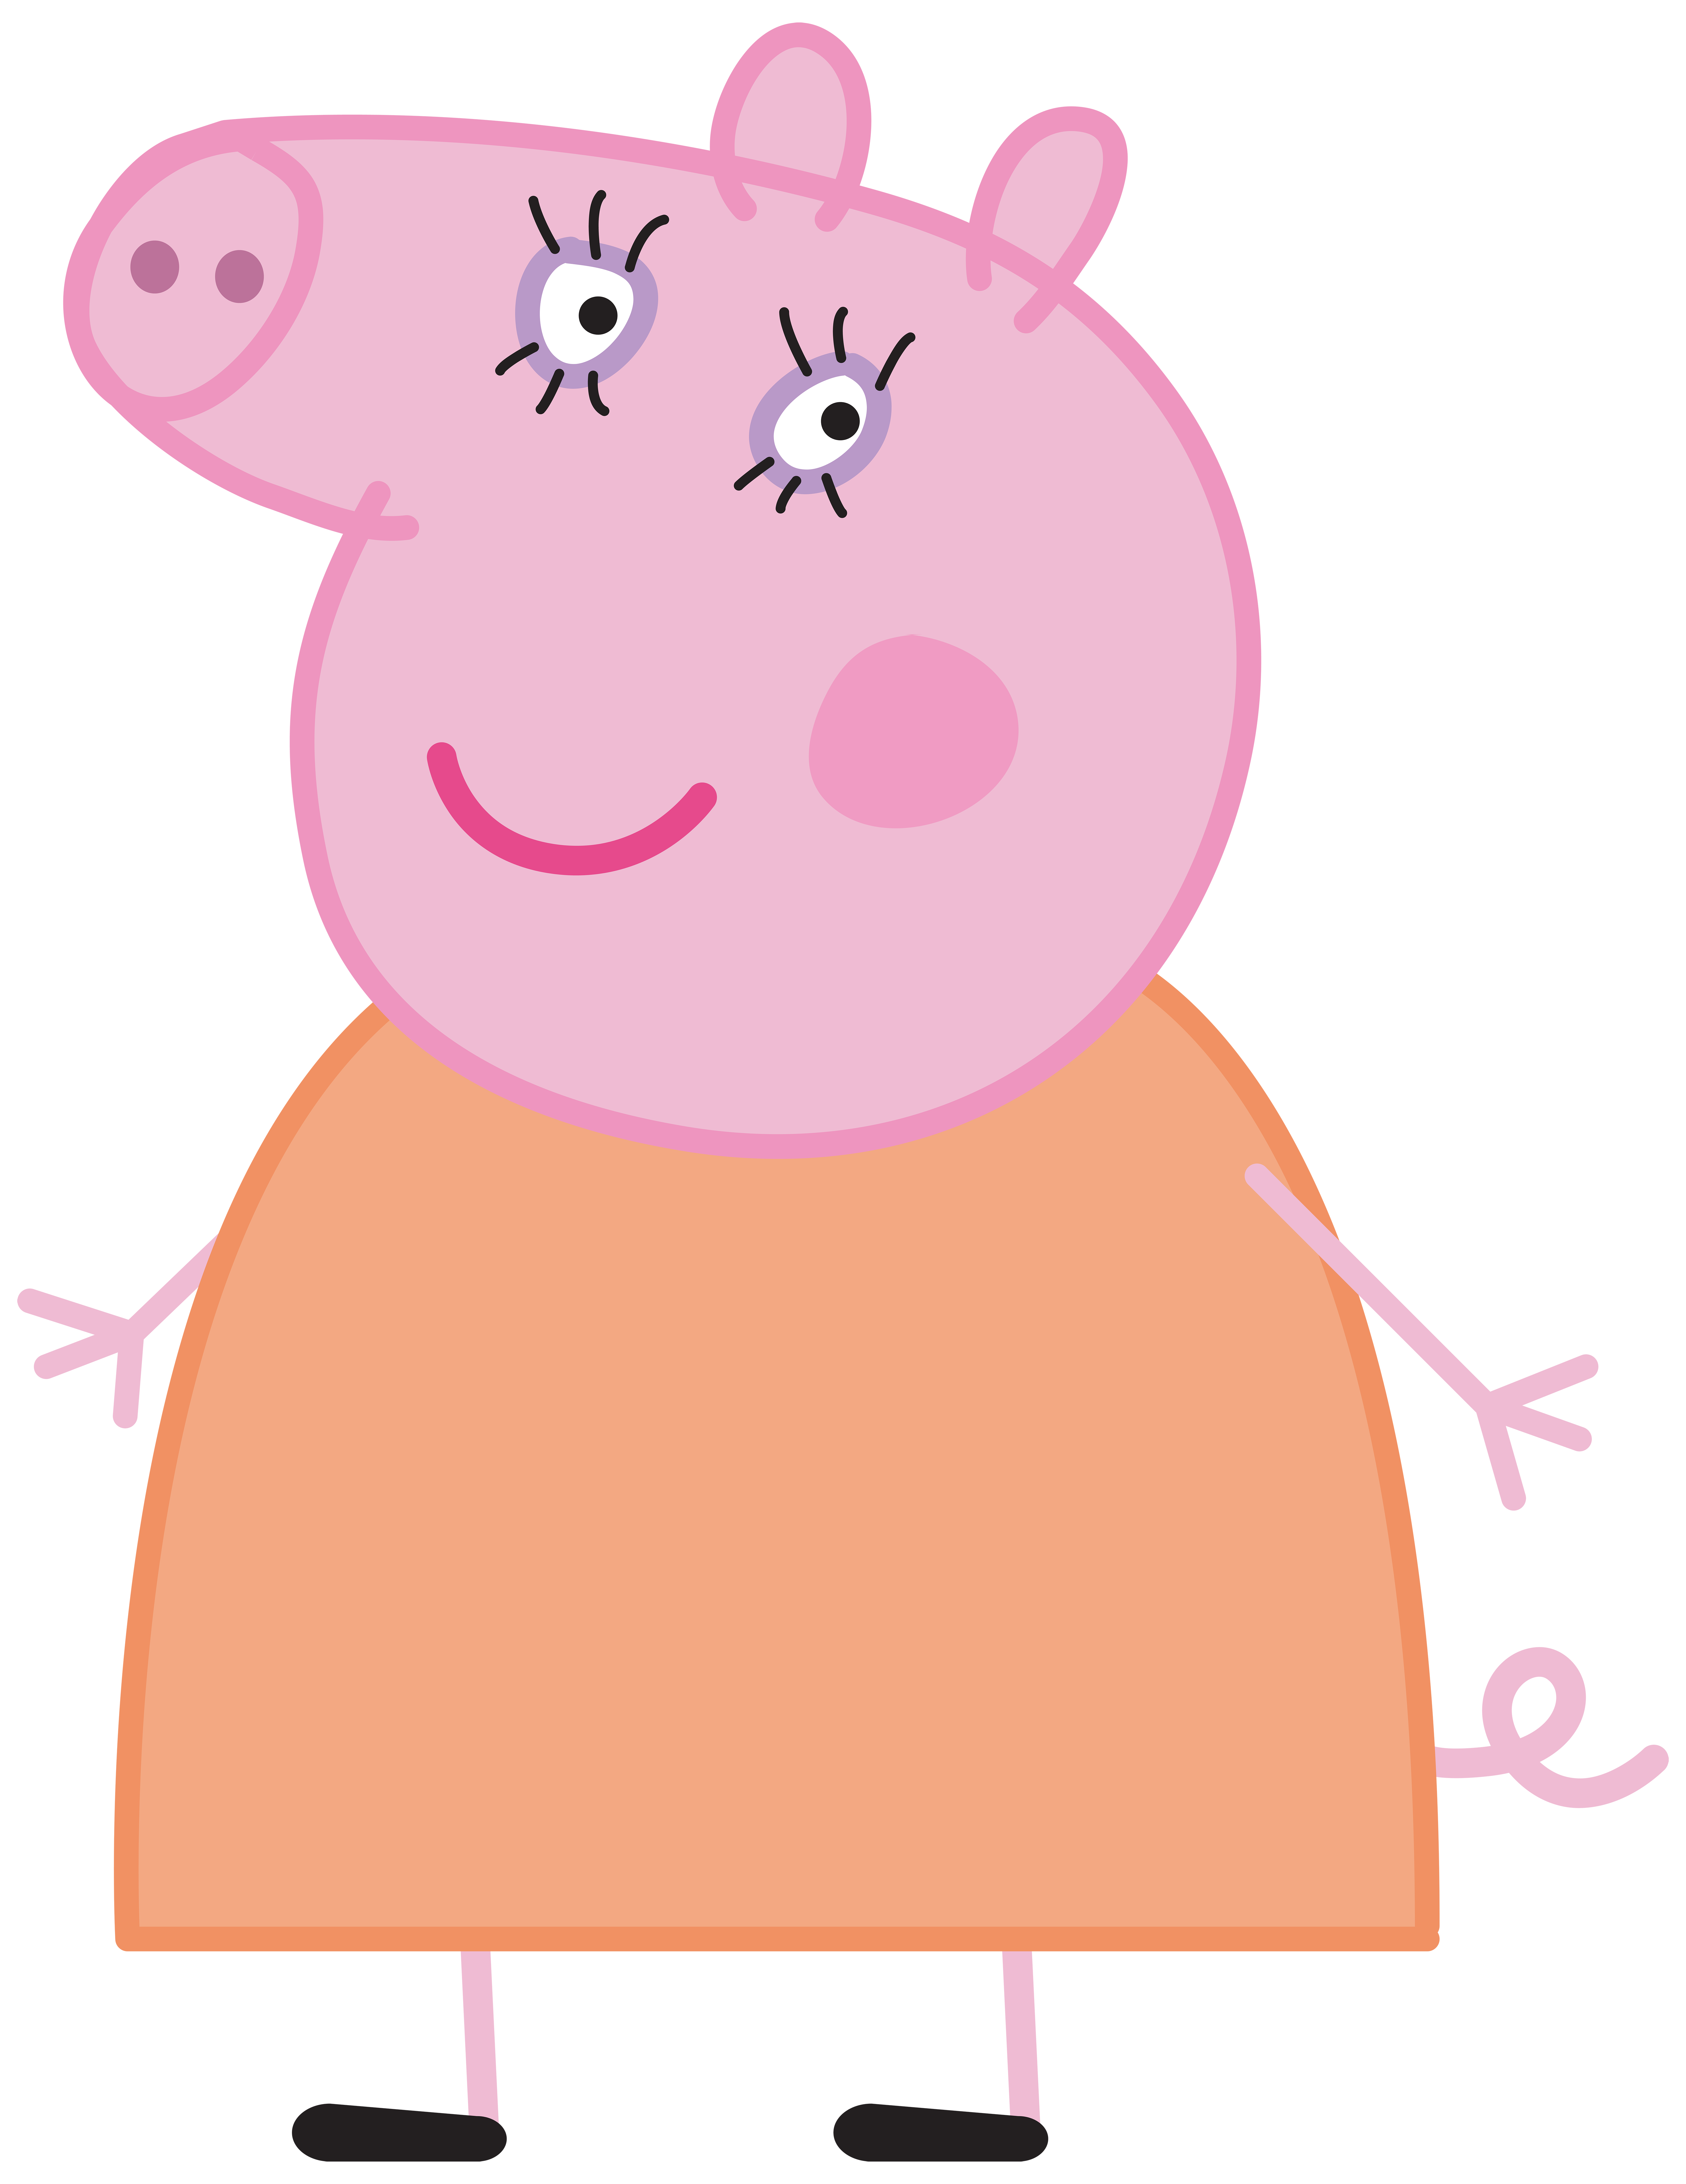 Pig peppa transparent png. Mummy clipart cooking